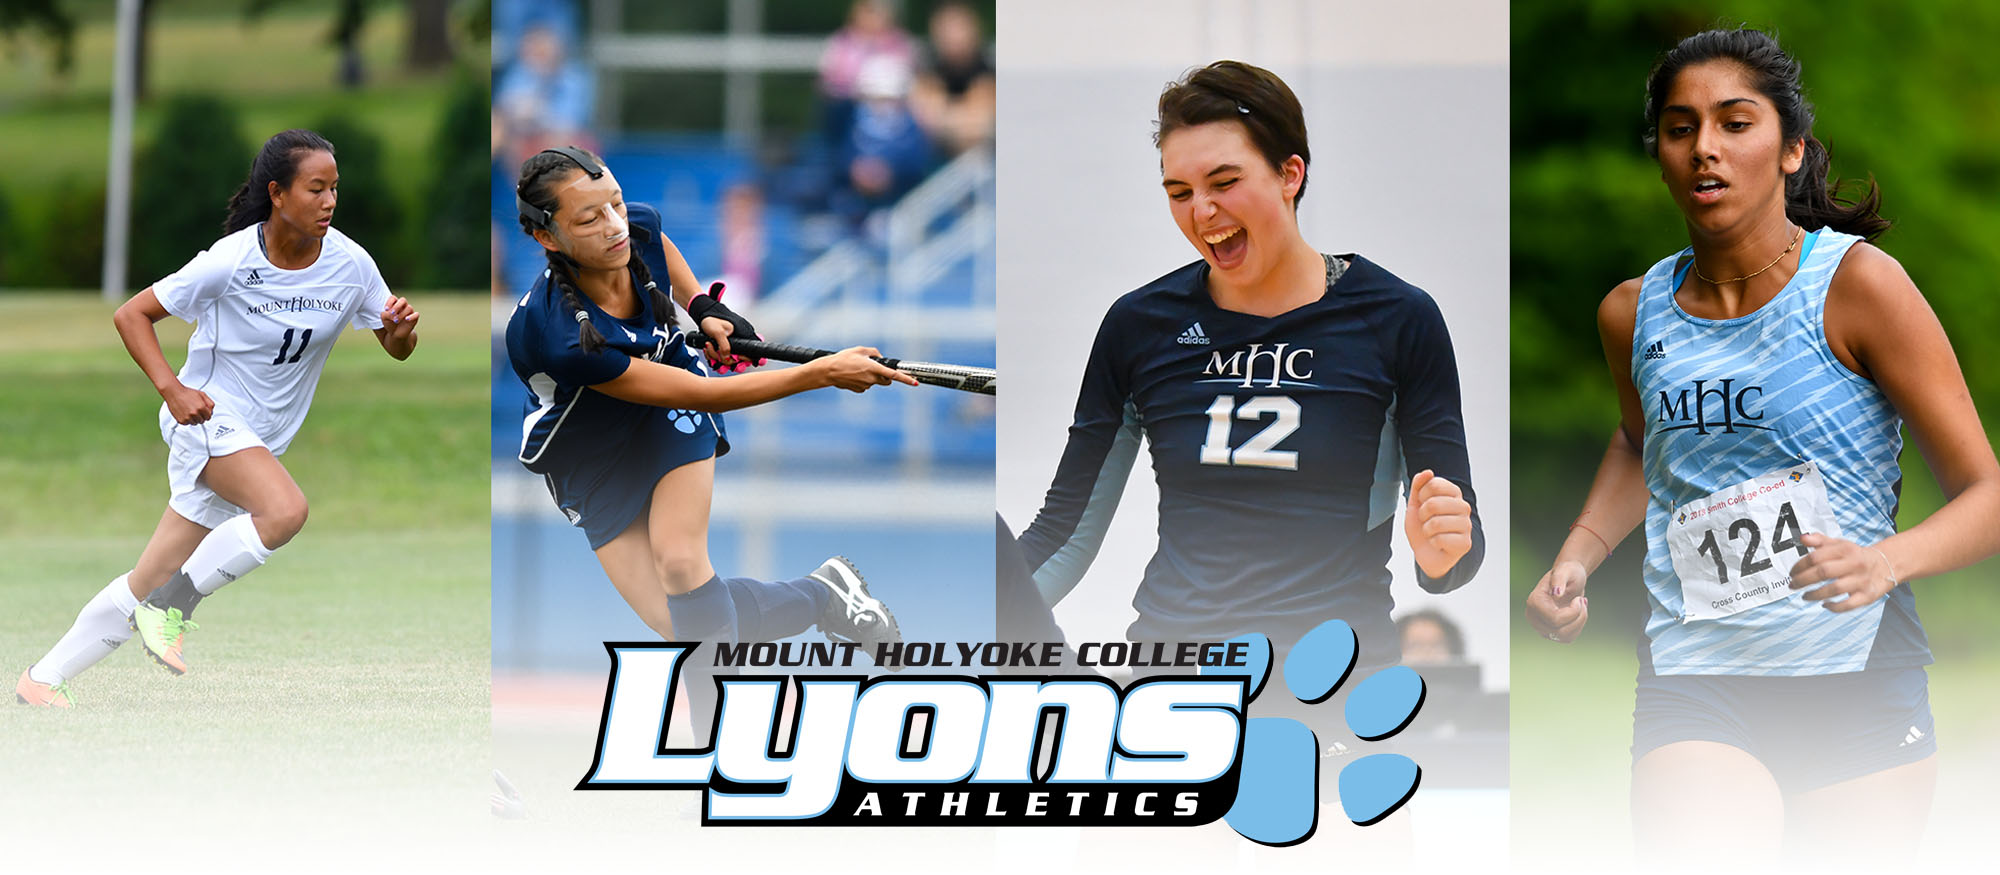 Mount Holyoke College Opens 2019-20 Athletic Season This Weekend